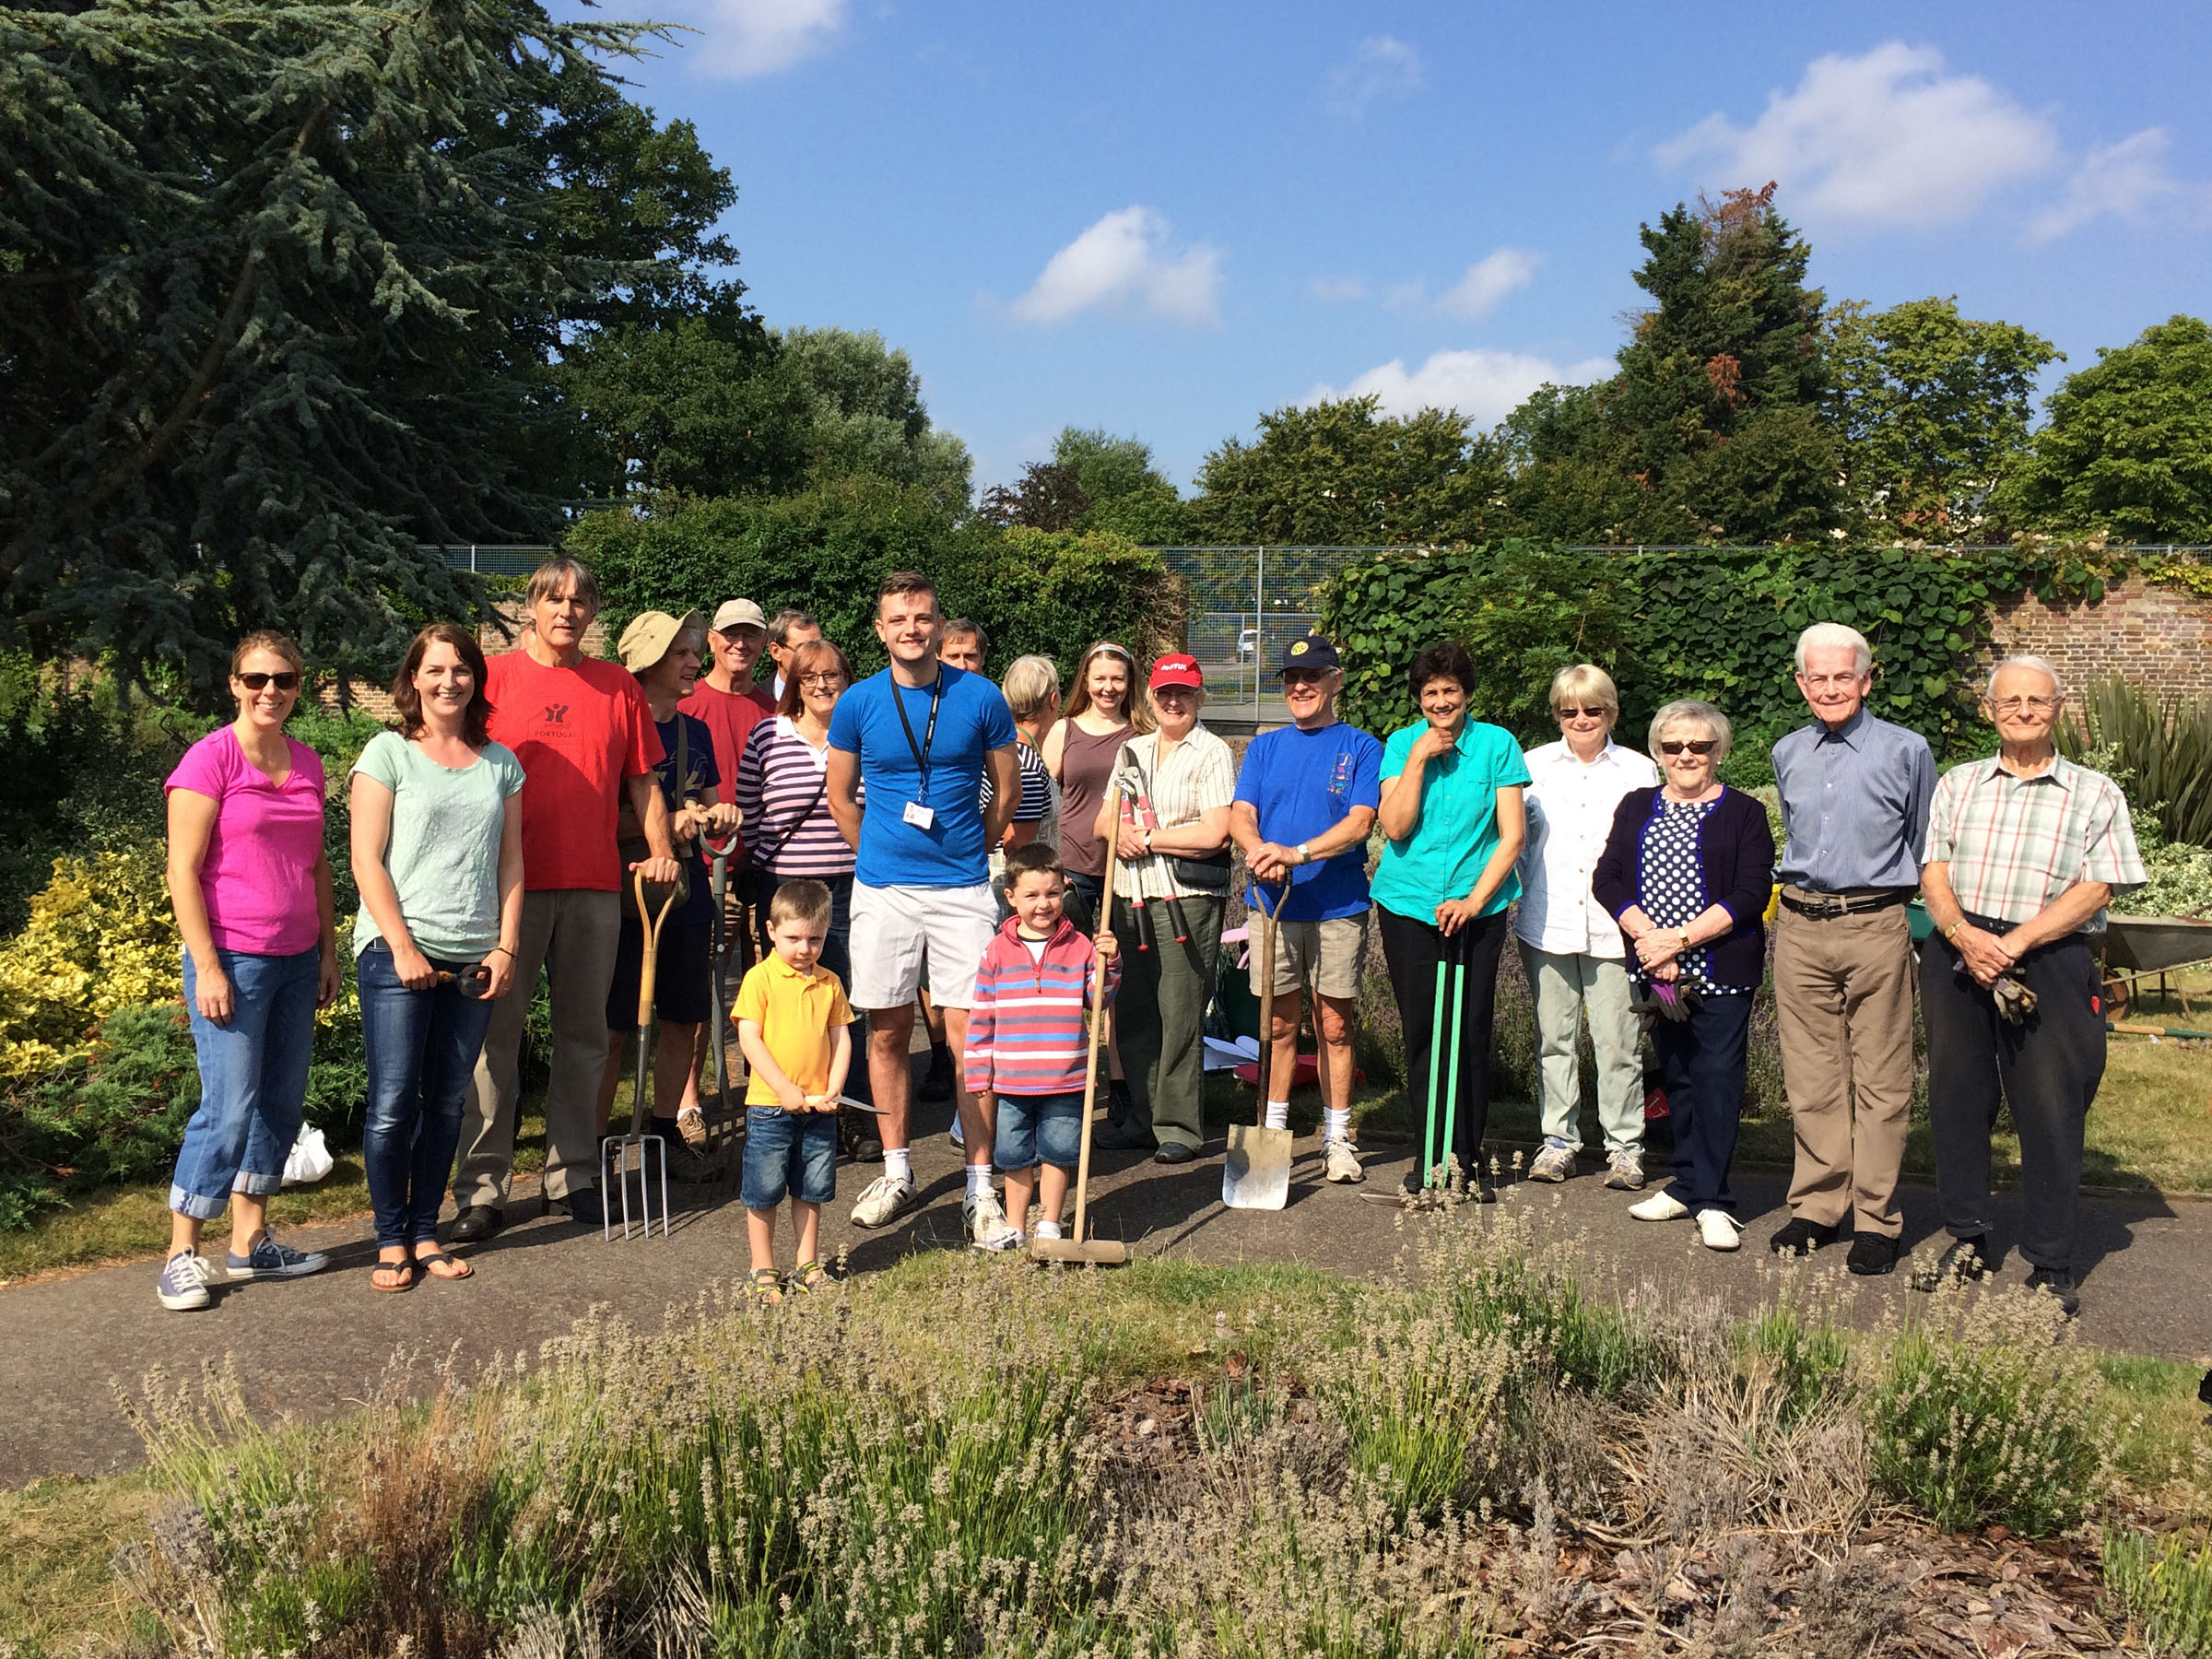 Sidcup Place Rose Garden, the team.